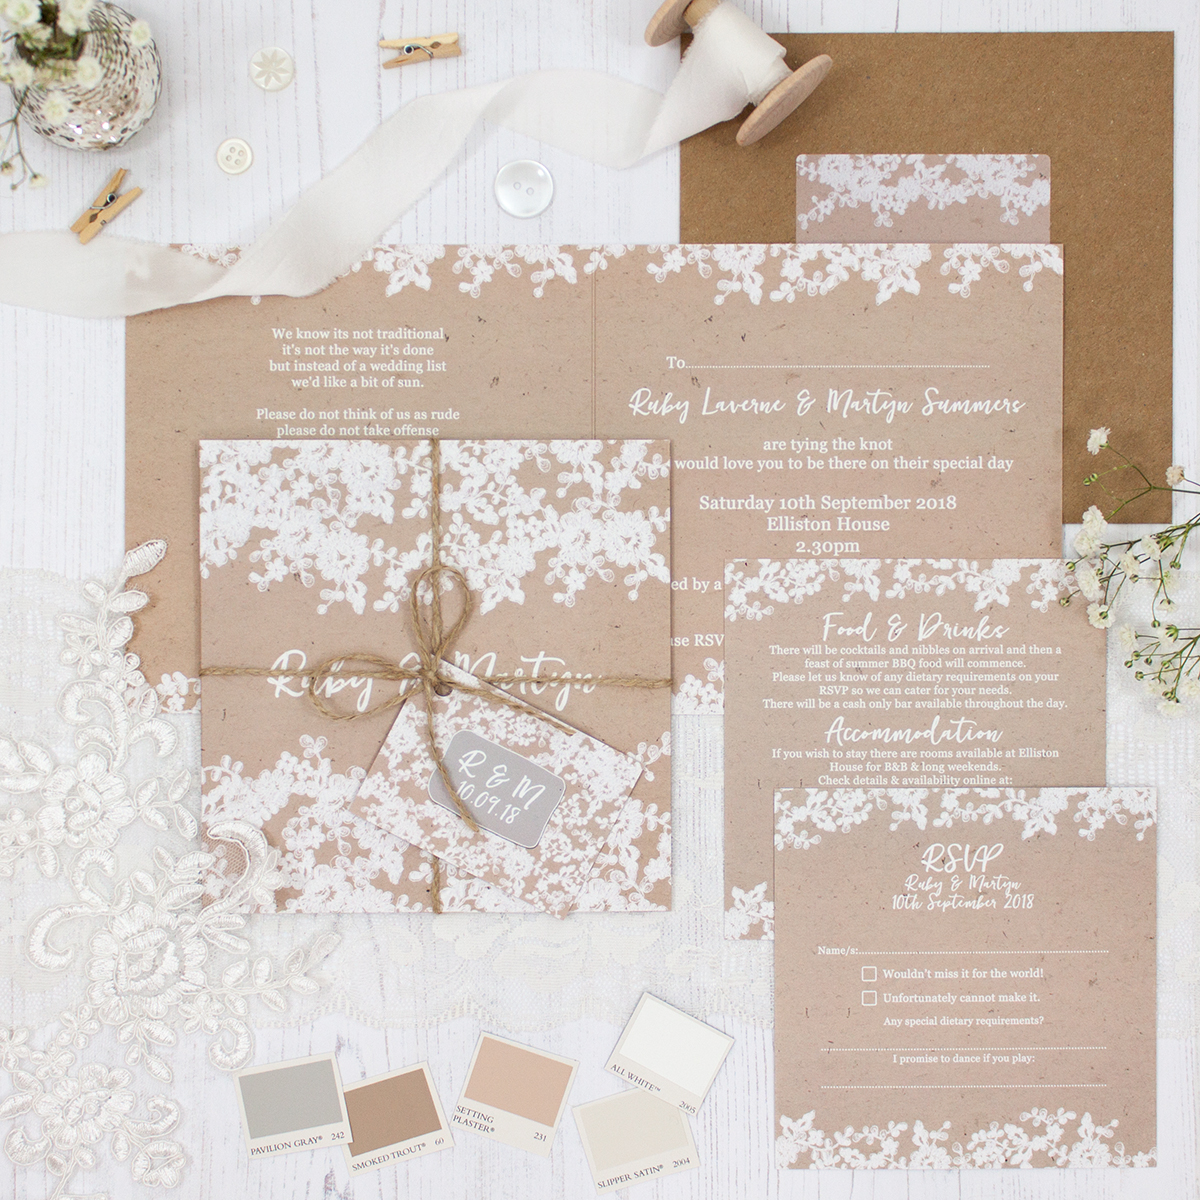 Lace Filigree Wedding showing invitation